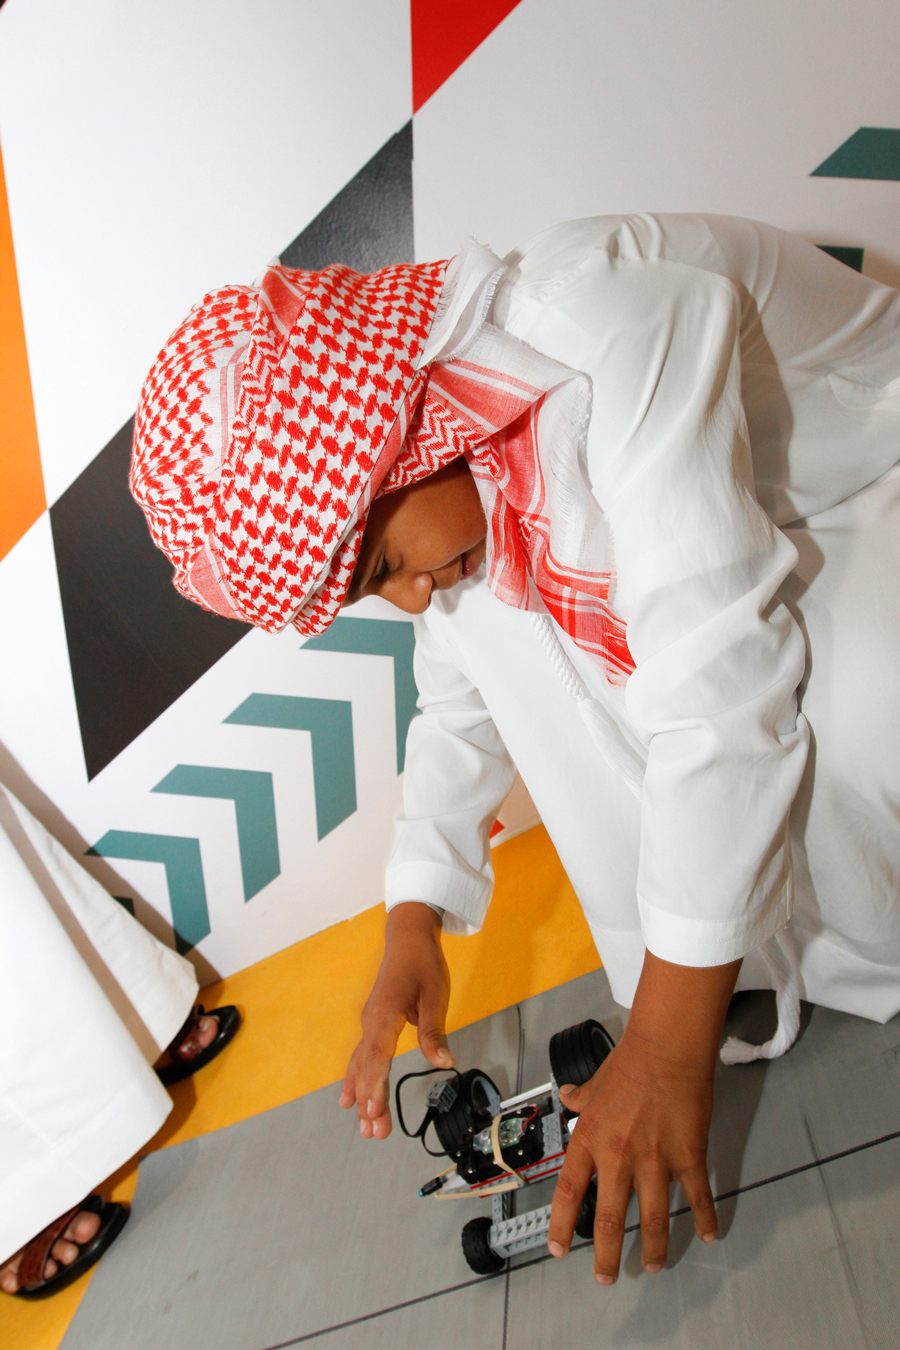 Student at the Abu Dhabi Science Festival